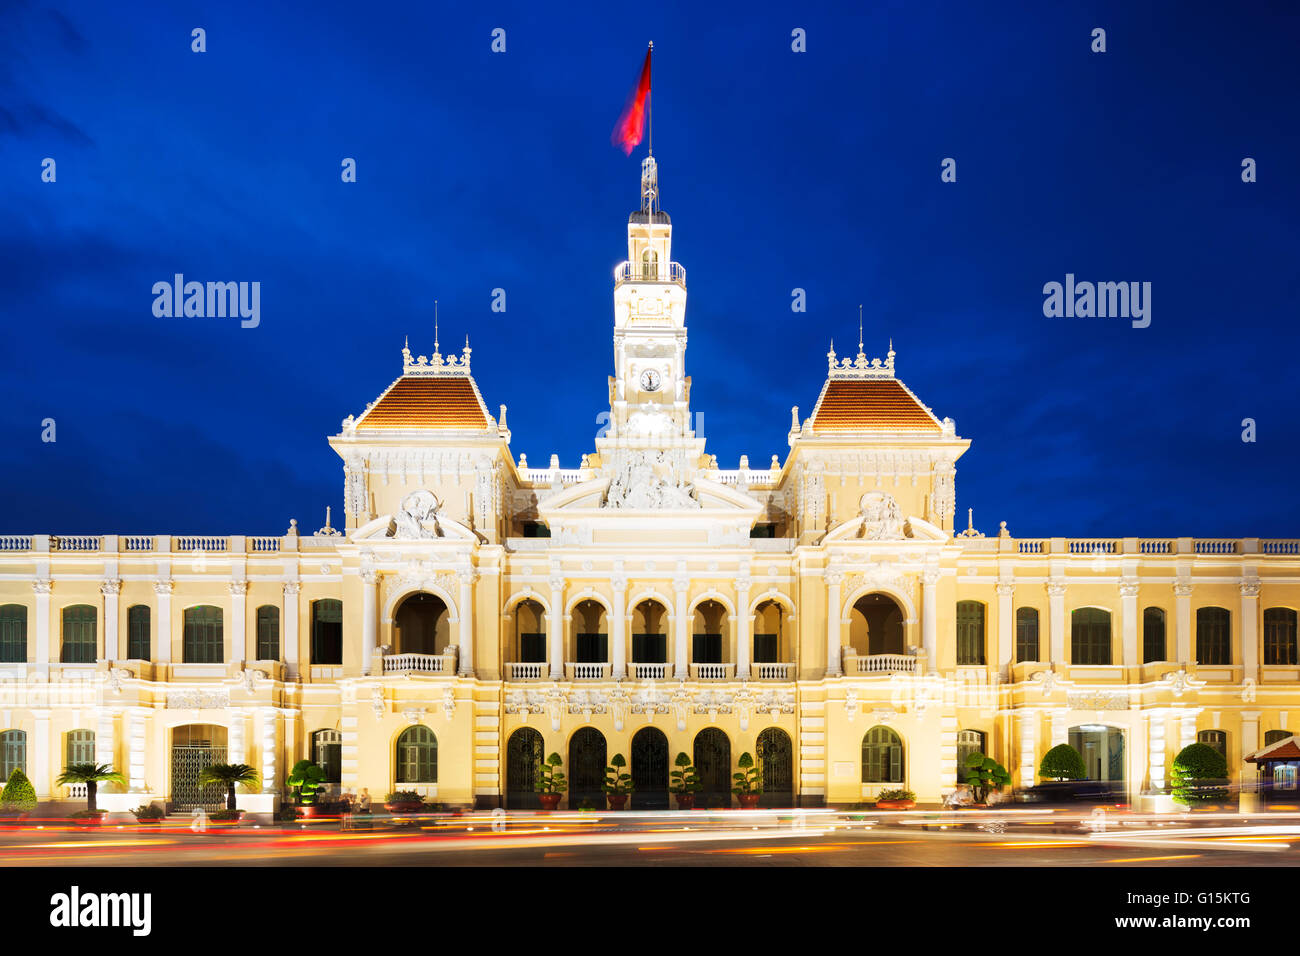 Hotel de Ville (City Hall), Ho Chi Minh City (Saigon), Vietnam, Indochina, Southeast Asia, Asia - Stock Image